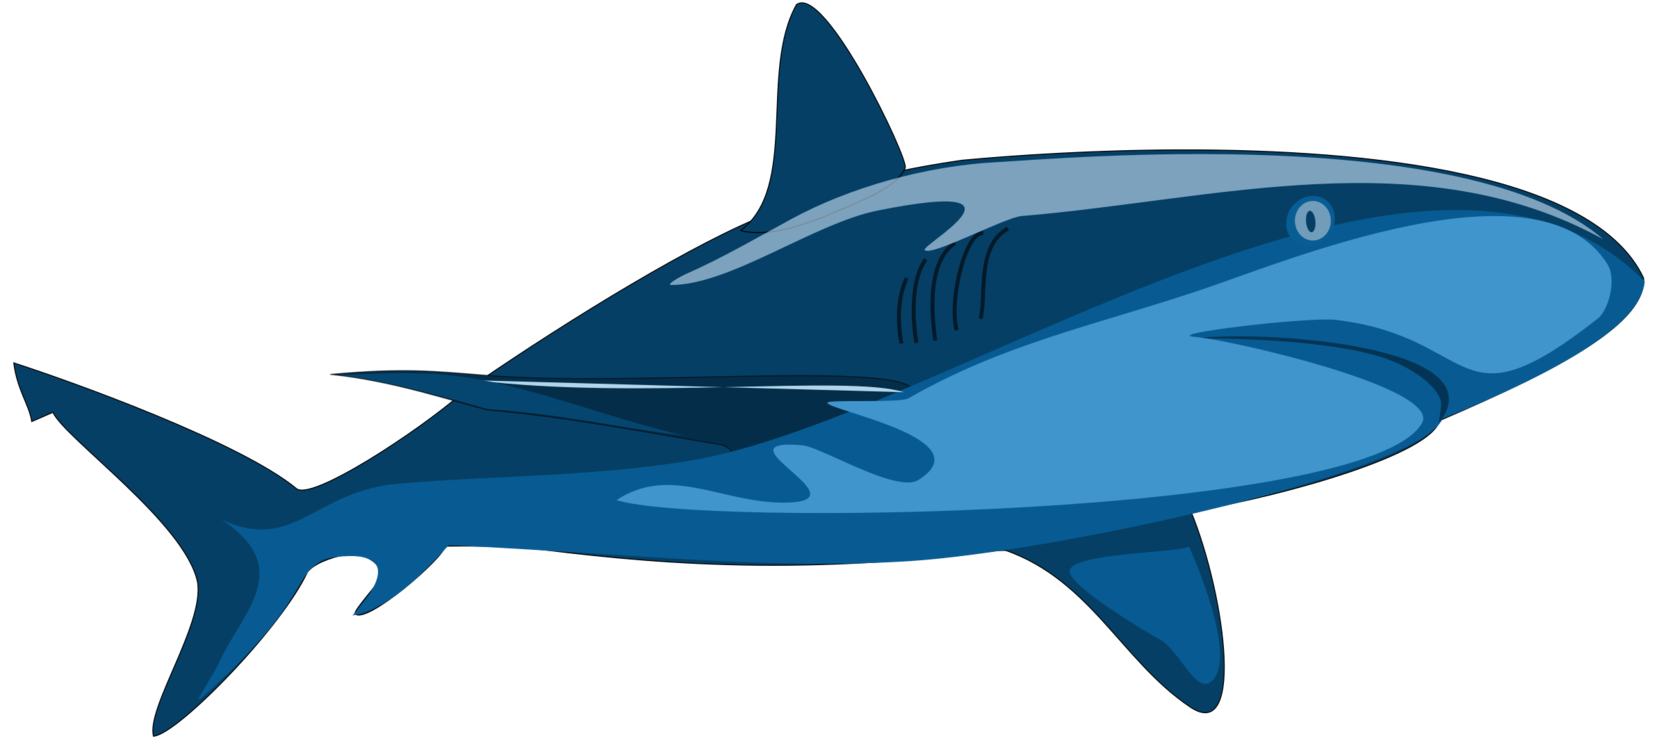 Marine Mammal,Shark,Whales Dolphins And Porpoises